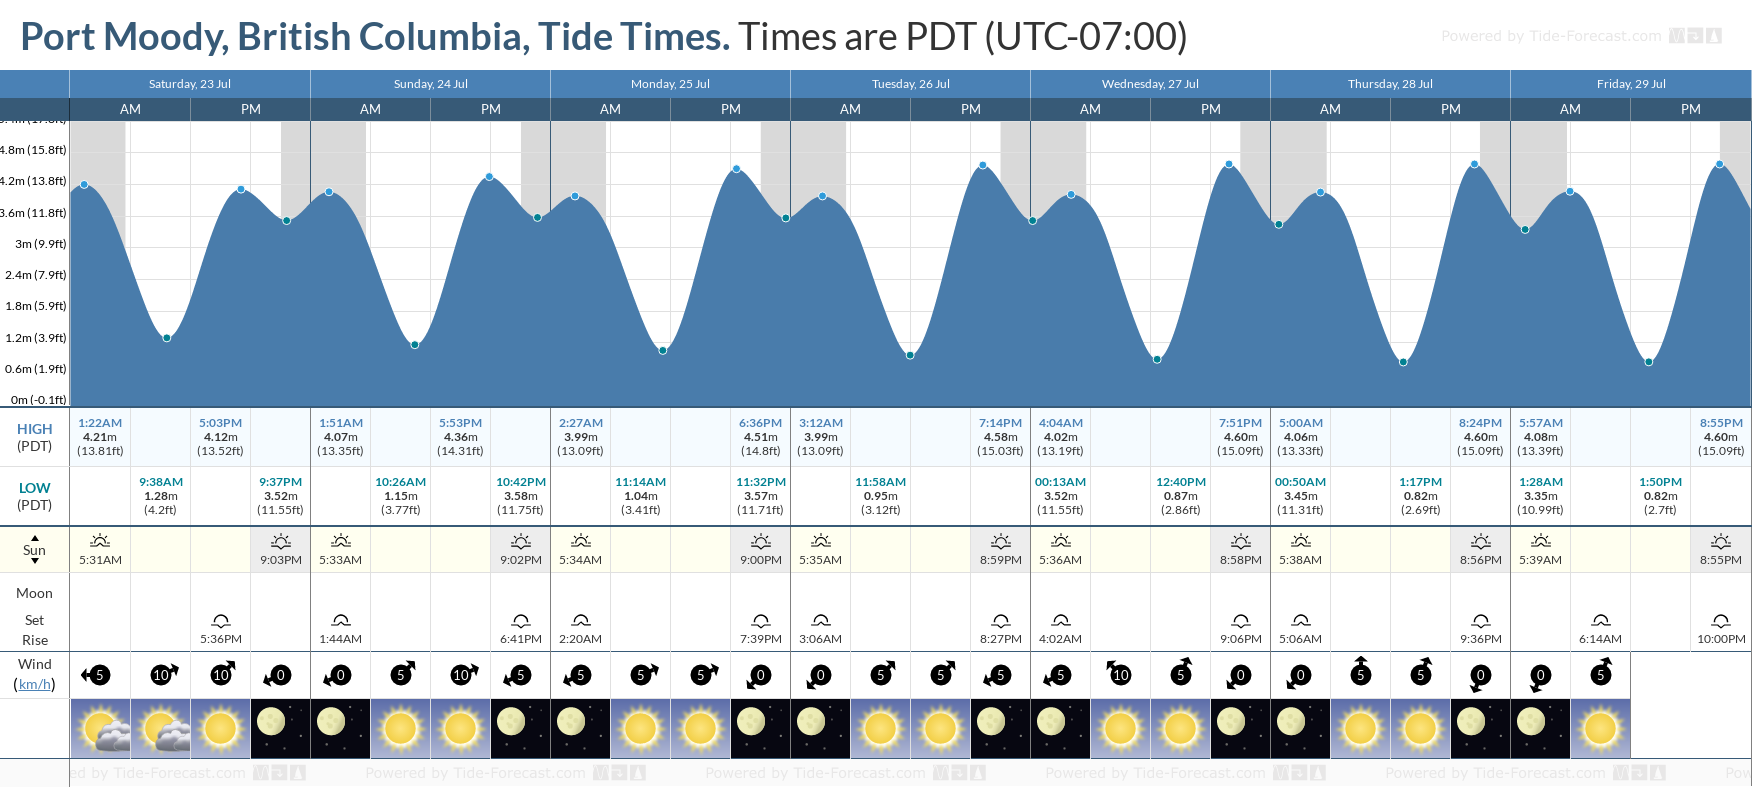 Port Moody, British Columbia Tide Chart including high and low tide tide times for the next 7 days